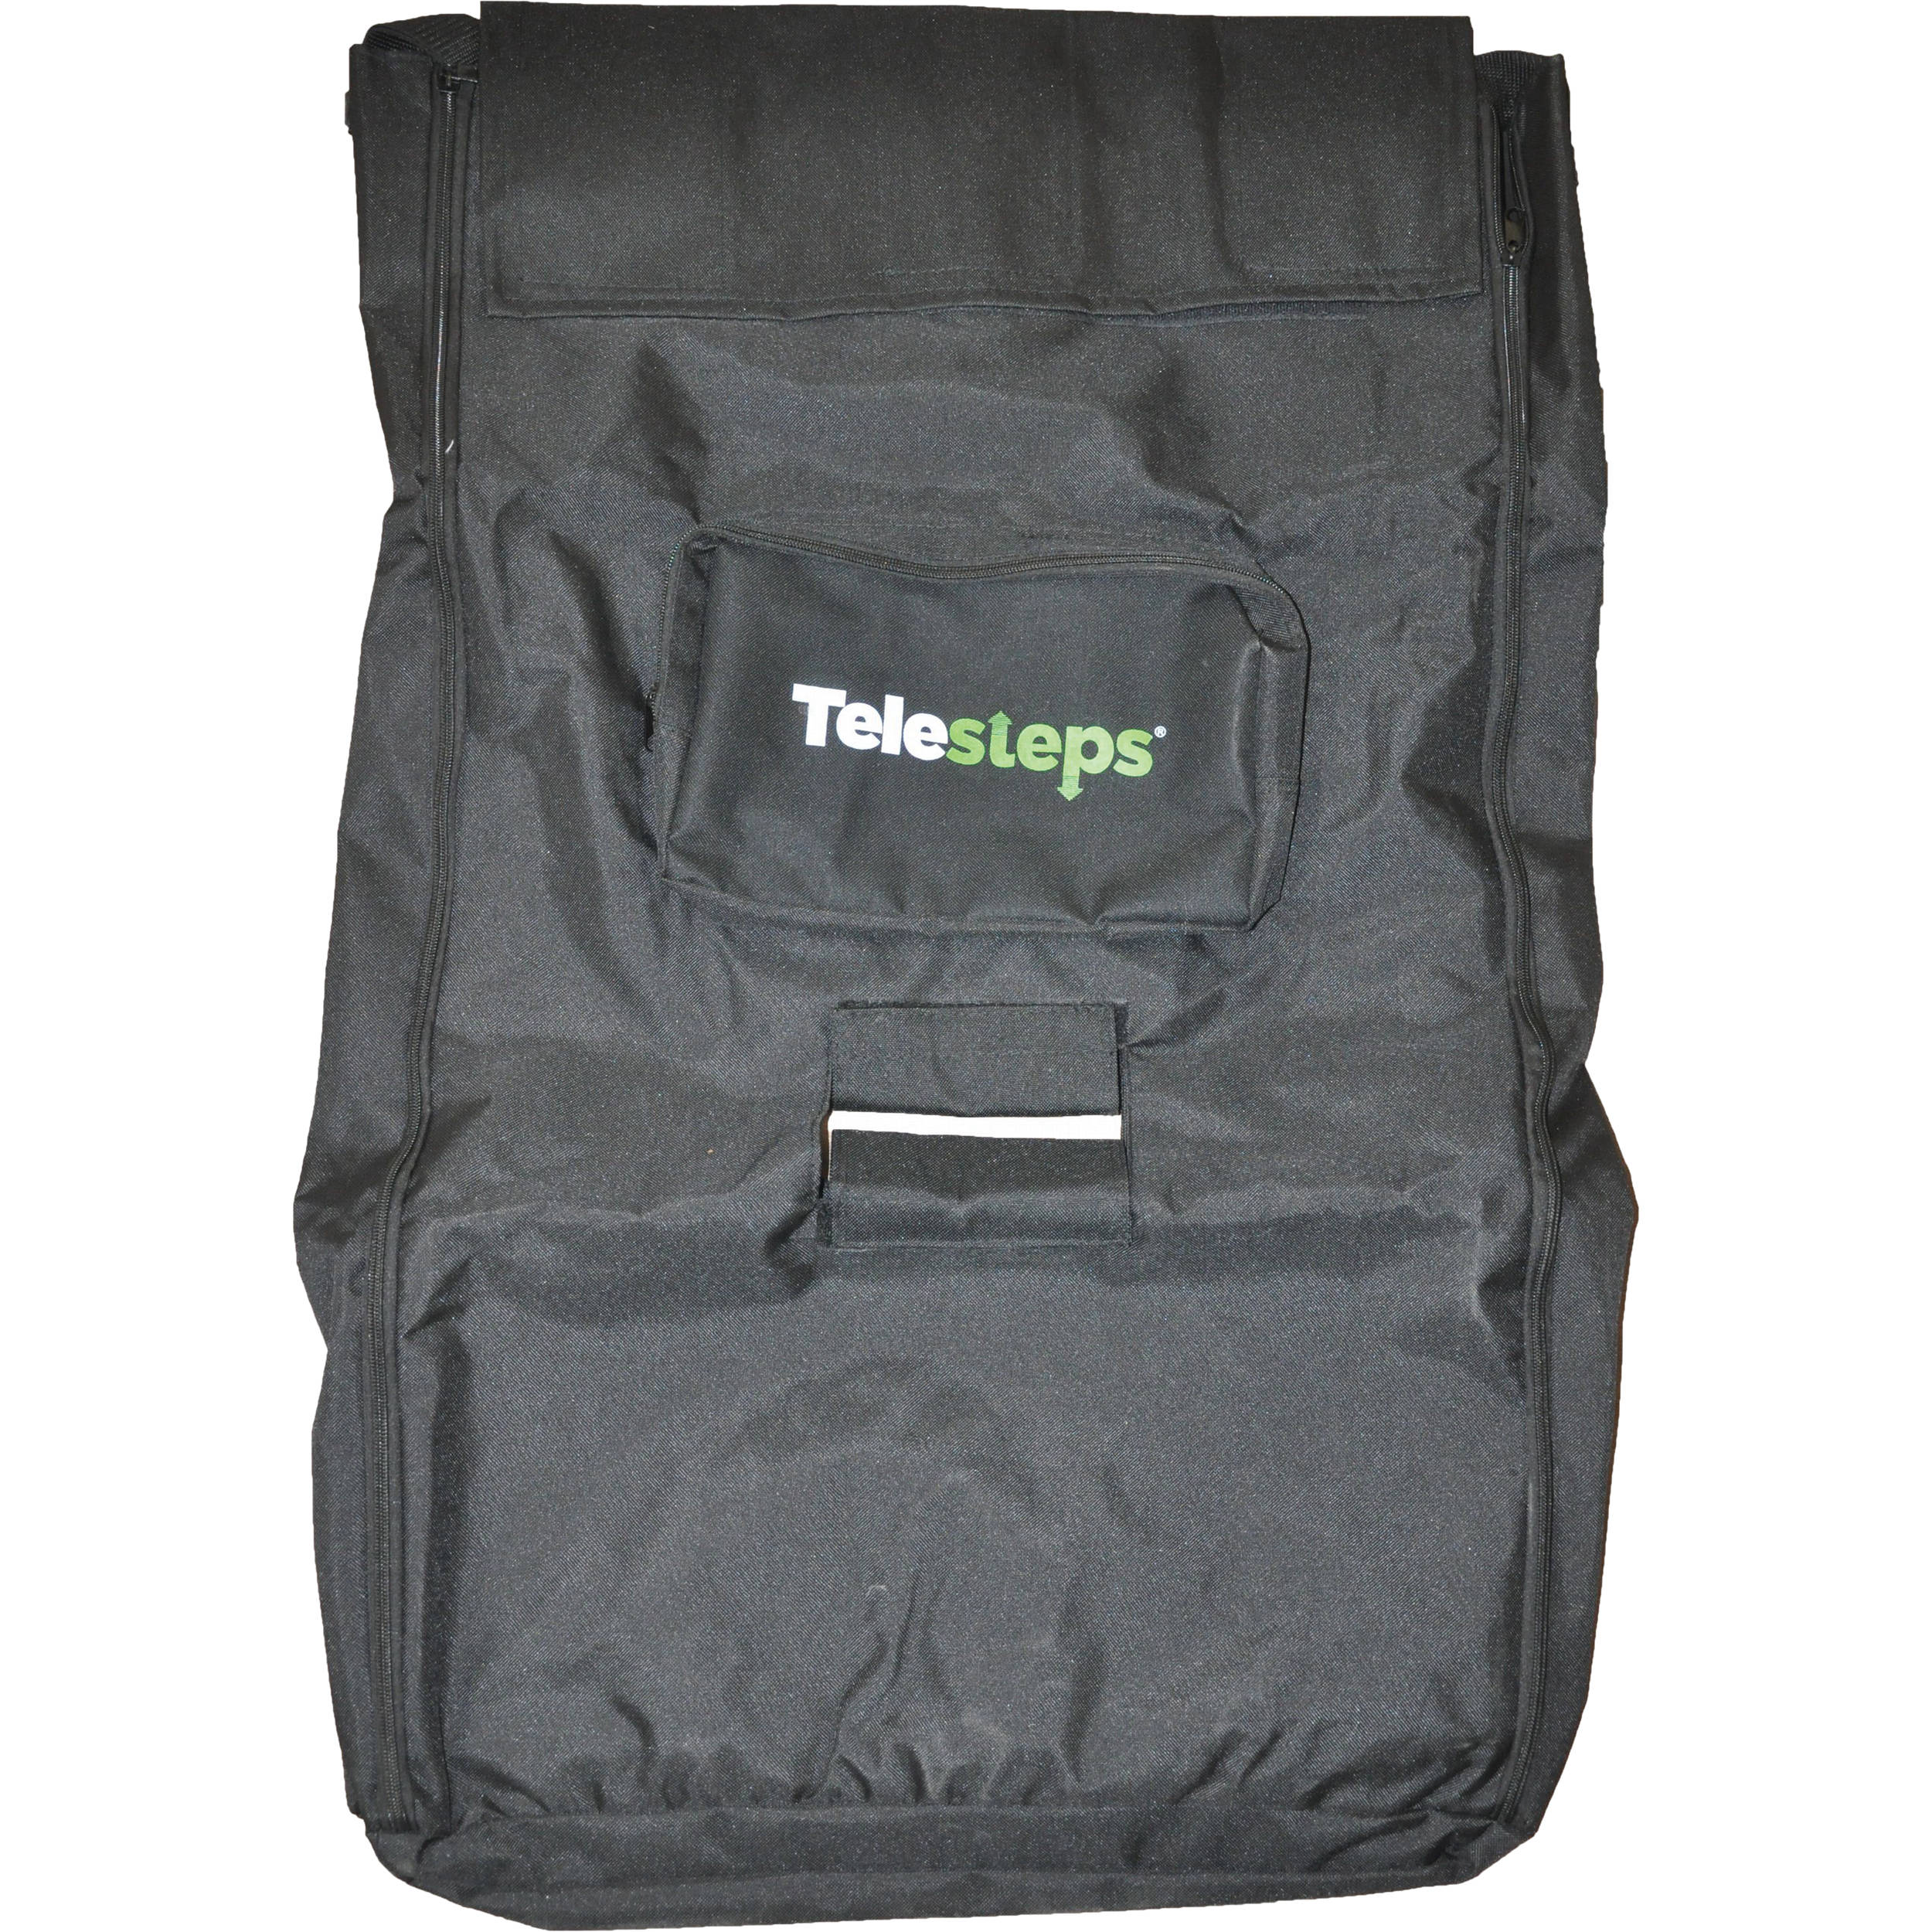 Telesteps Ladder Canvas Carry Bag BAGS-TS B&H Photo Video